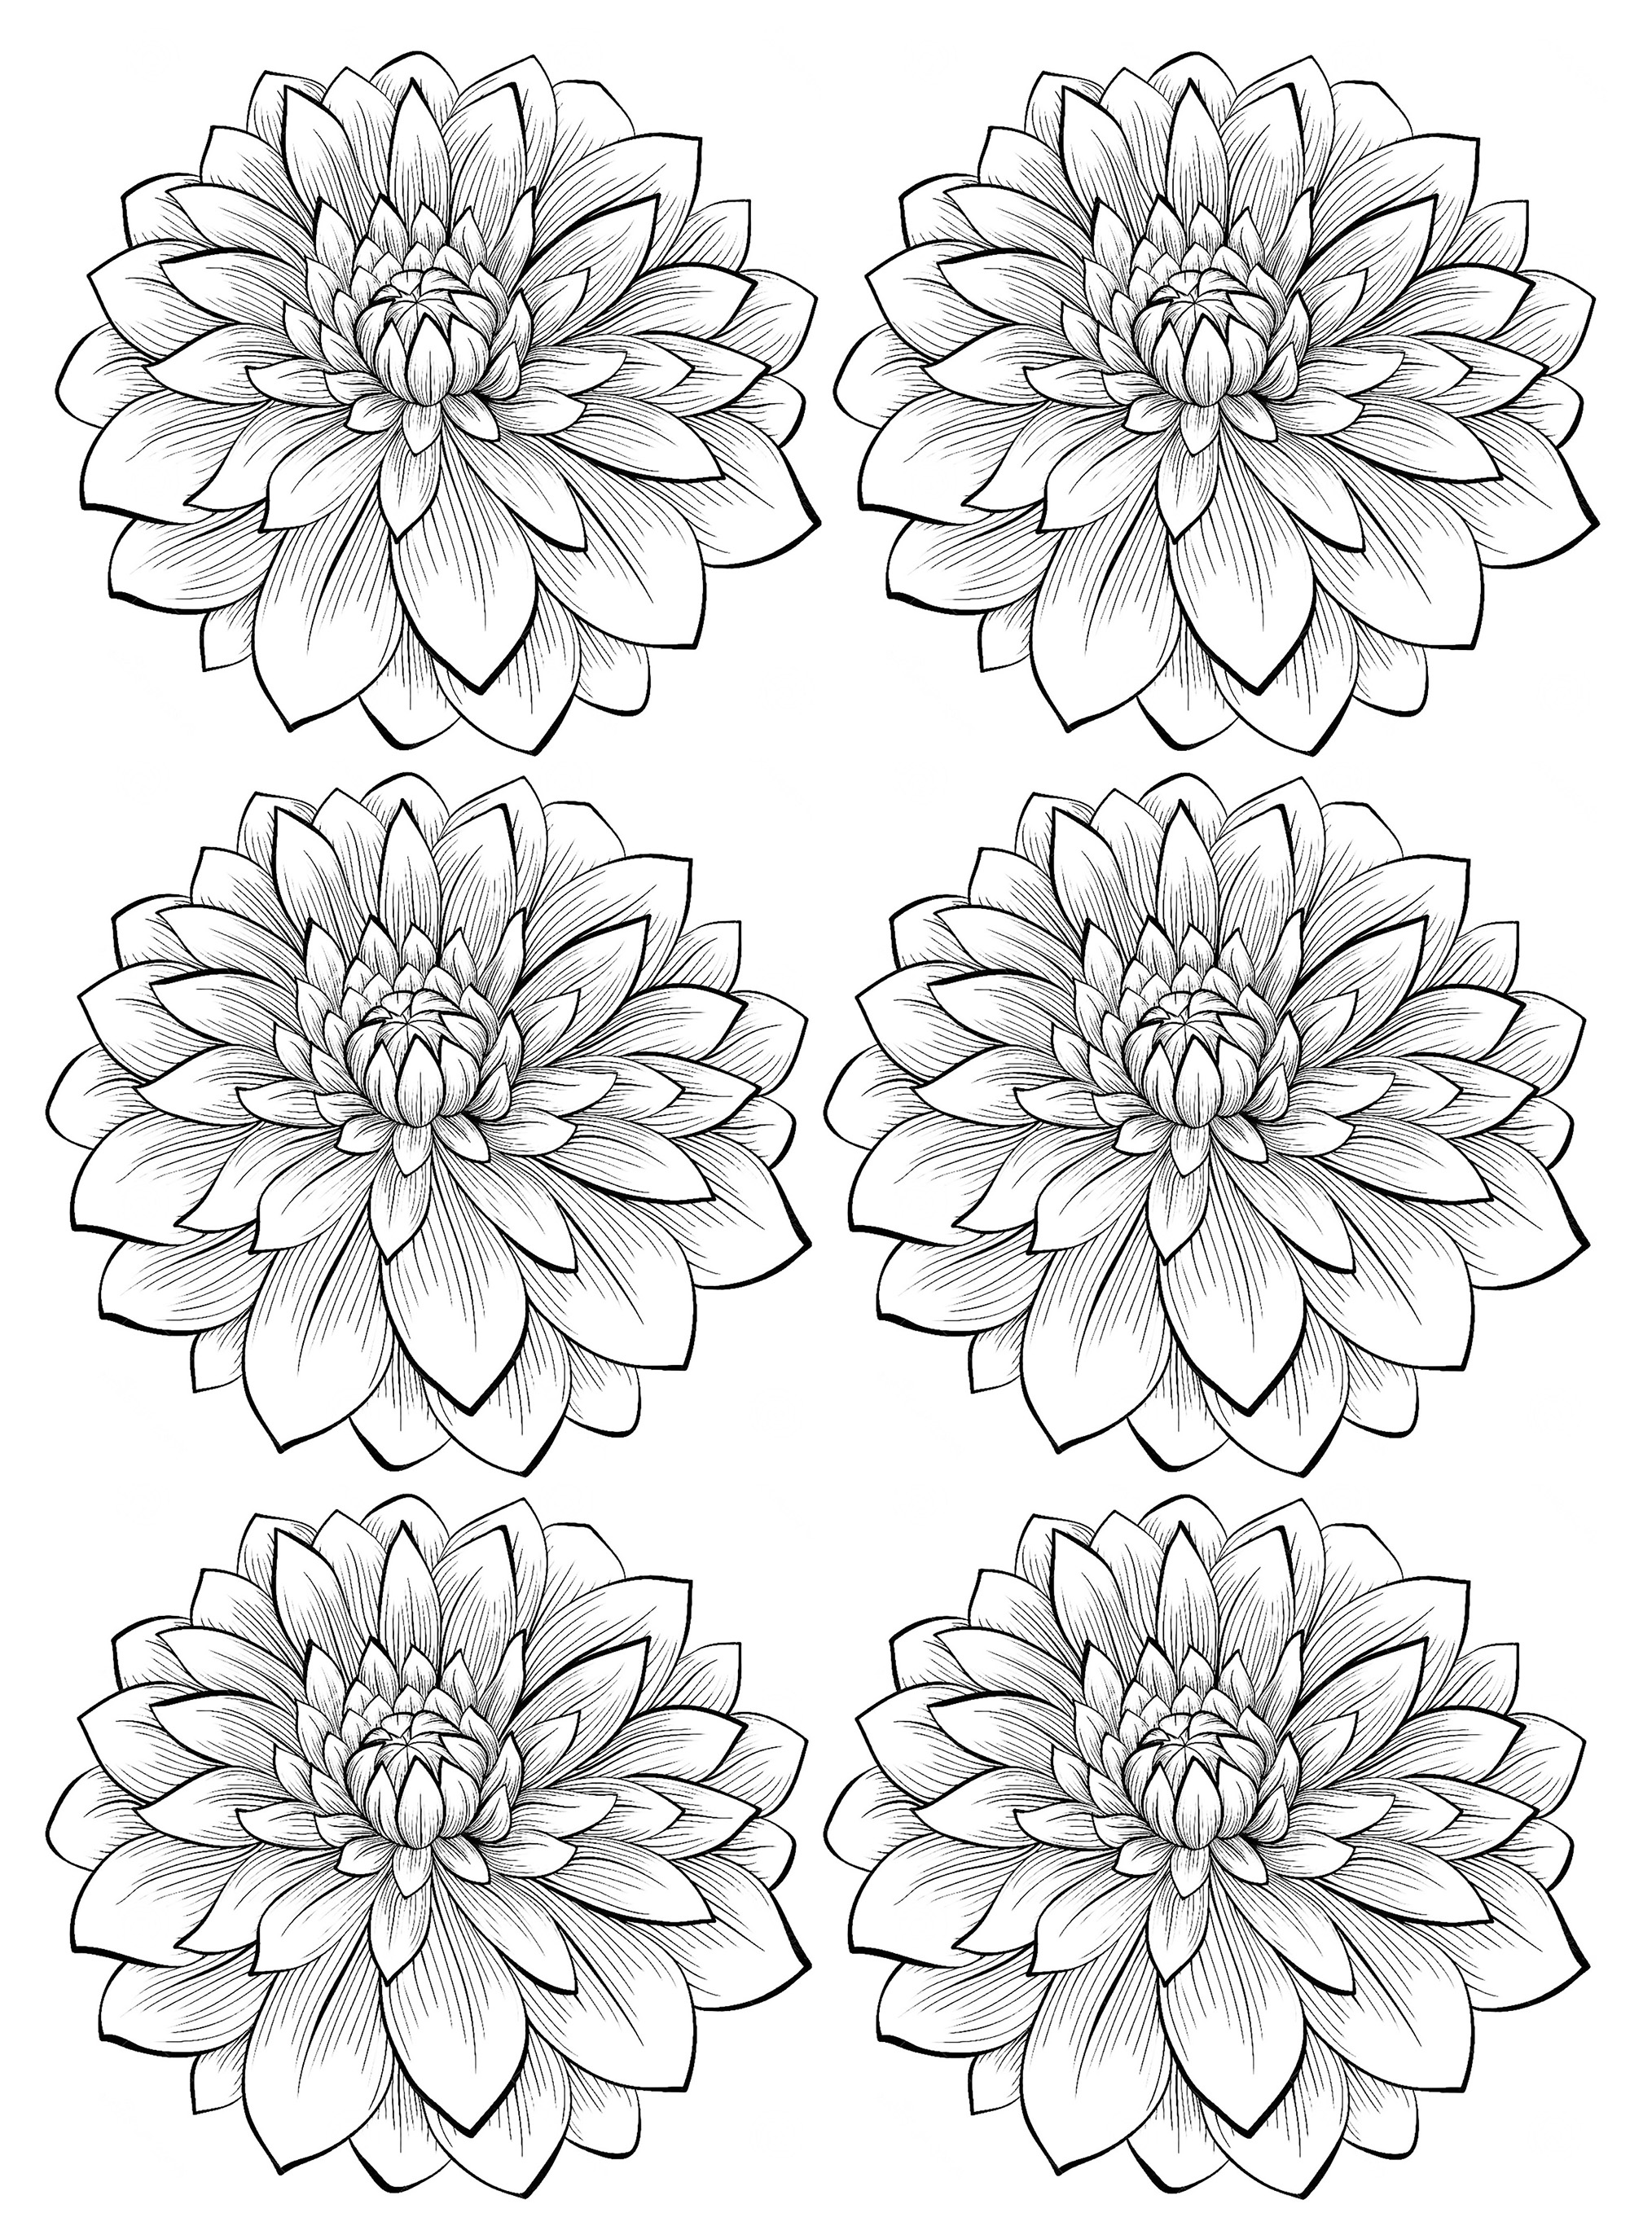 coloring pages about flowers flower coloring pages for adults best coloring pages for flowers coloring pages about